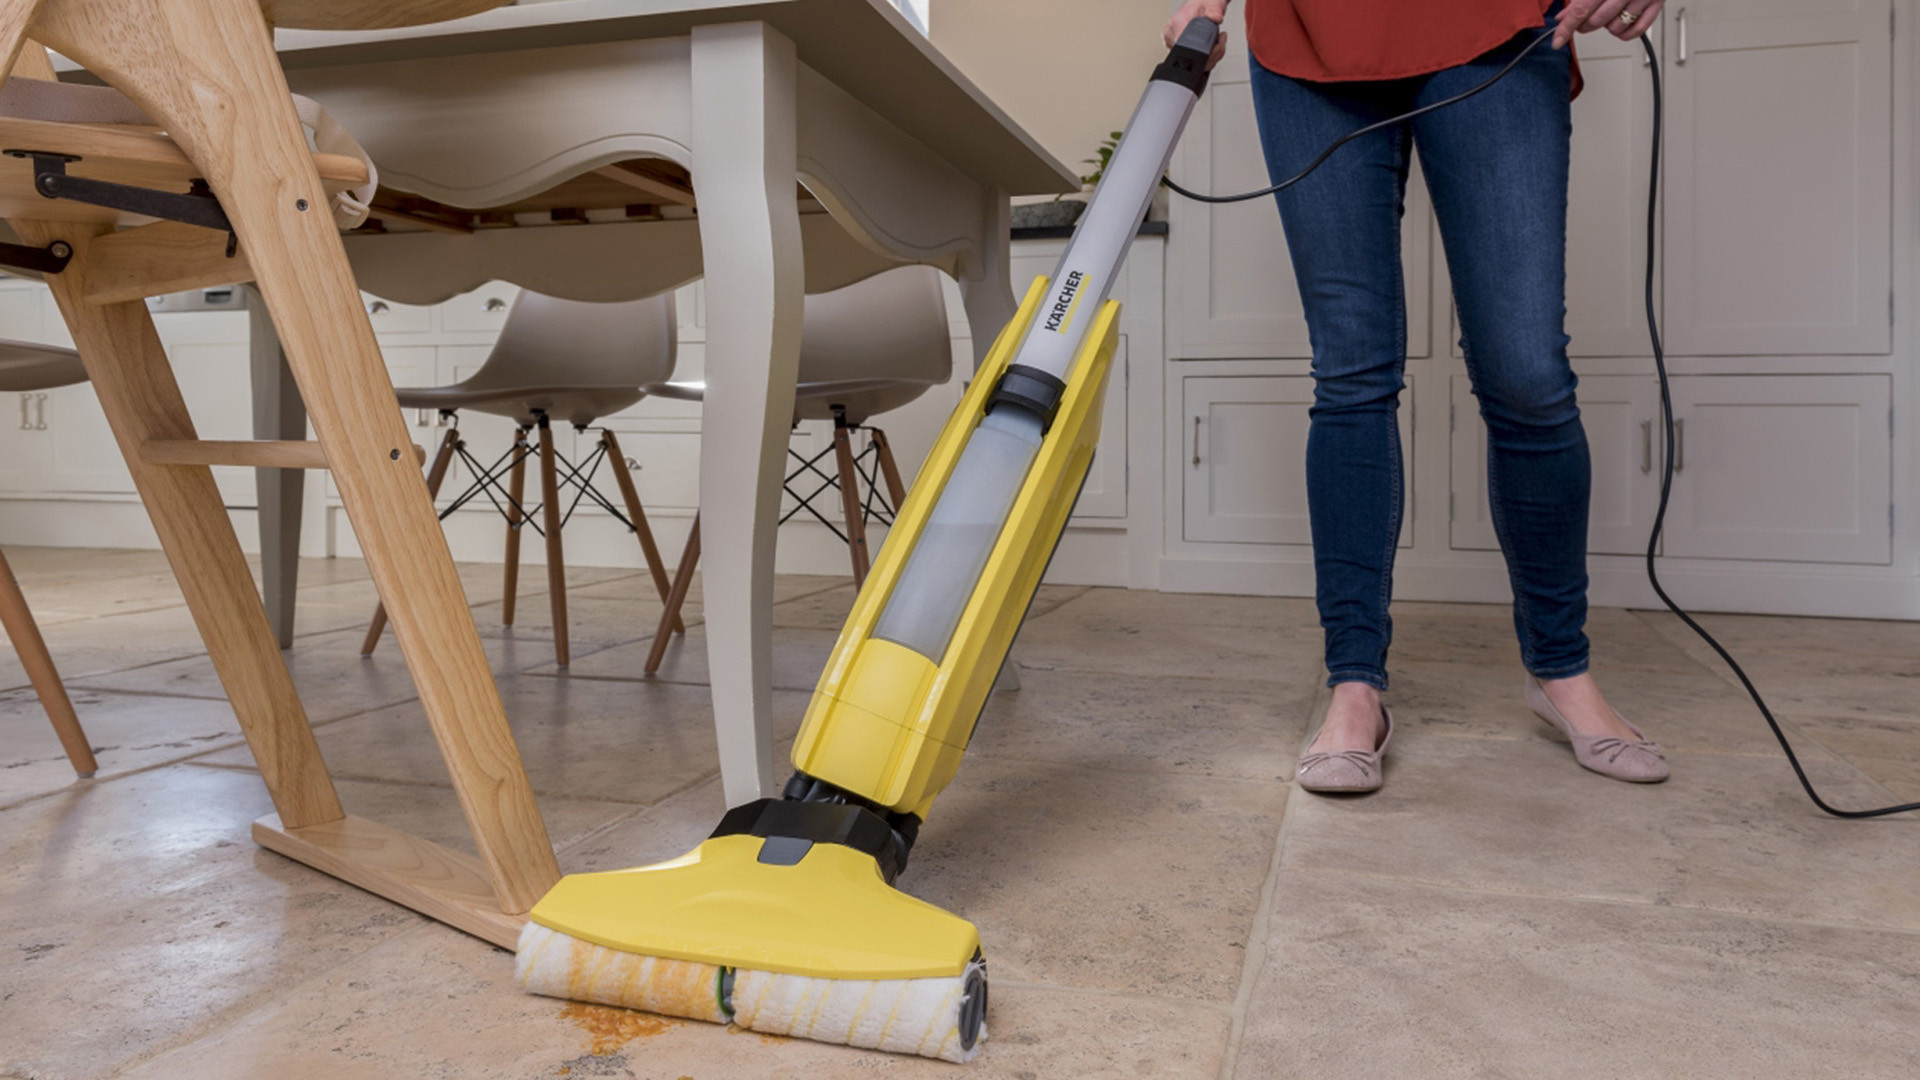 professional hardwood floor cleaning cost of karcher fc5 hard floor cleaner review trusted reviews intended for karcher fc5 5 1